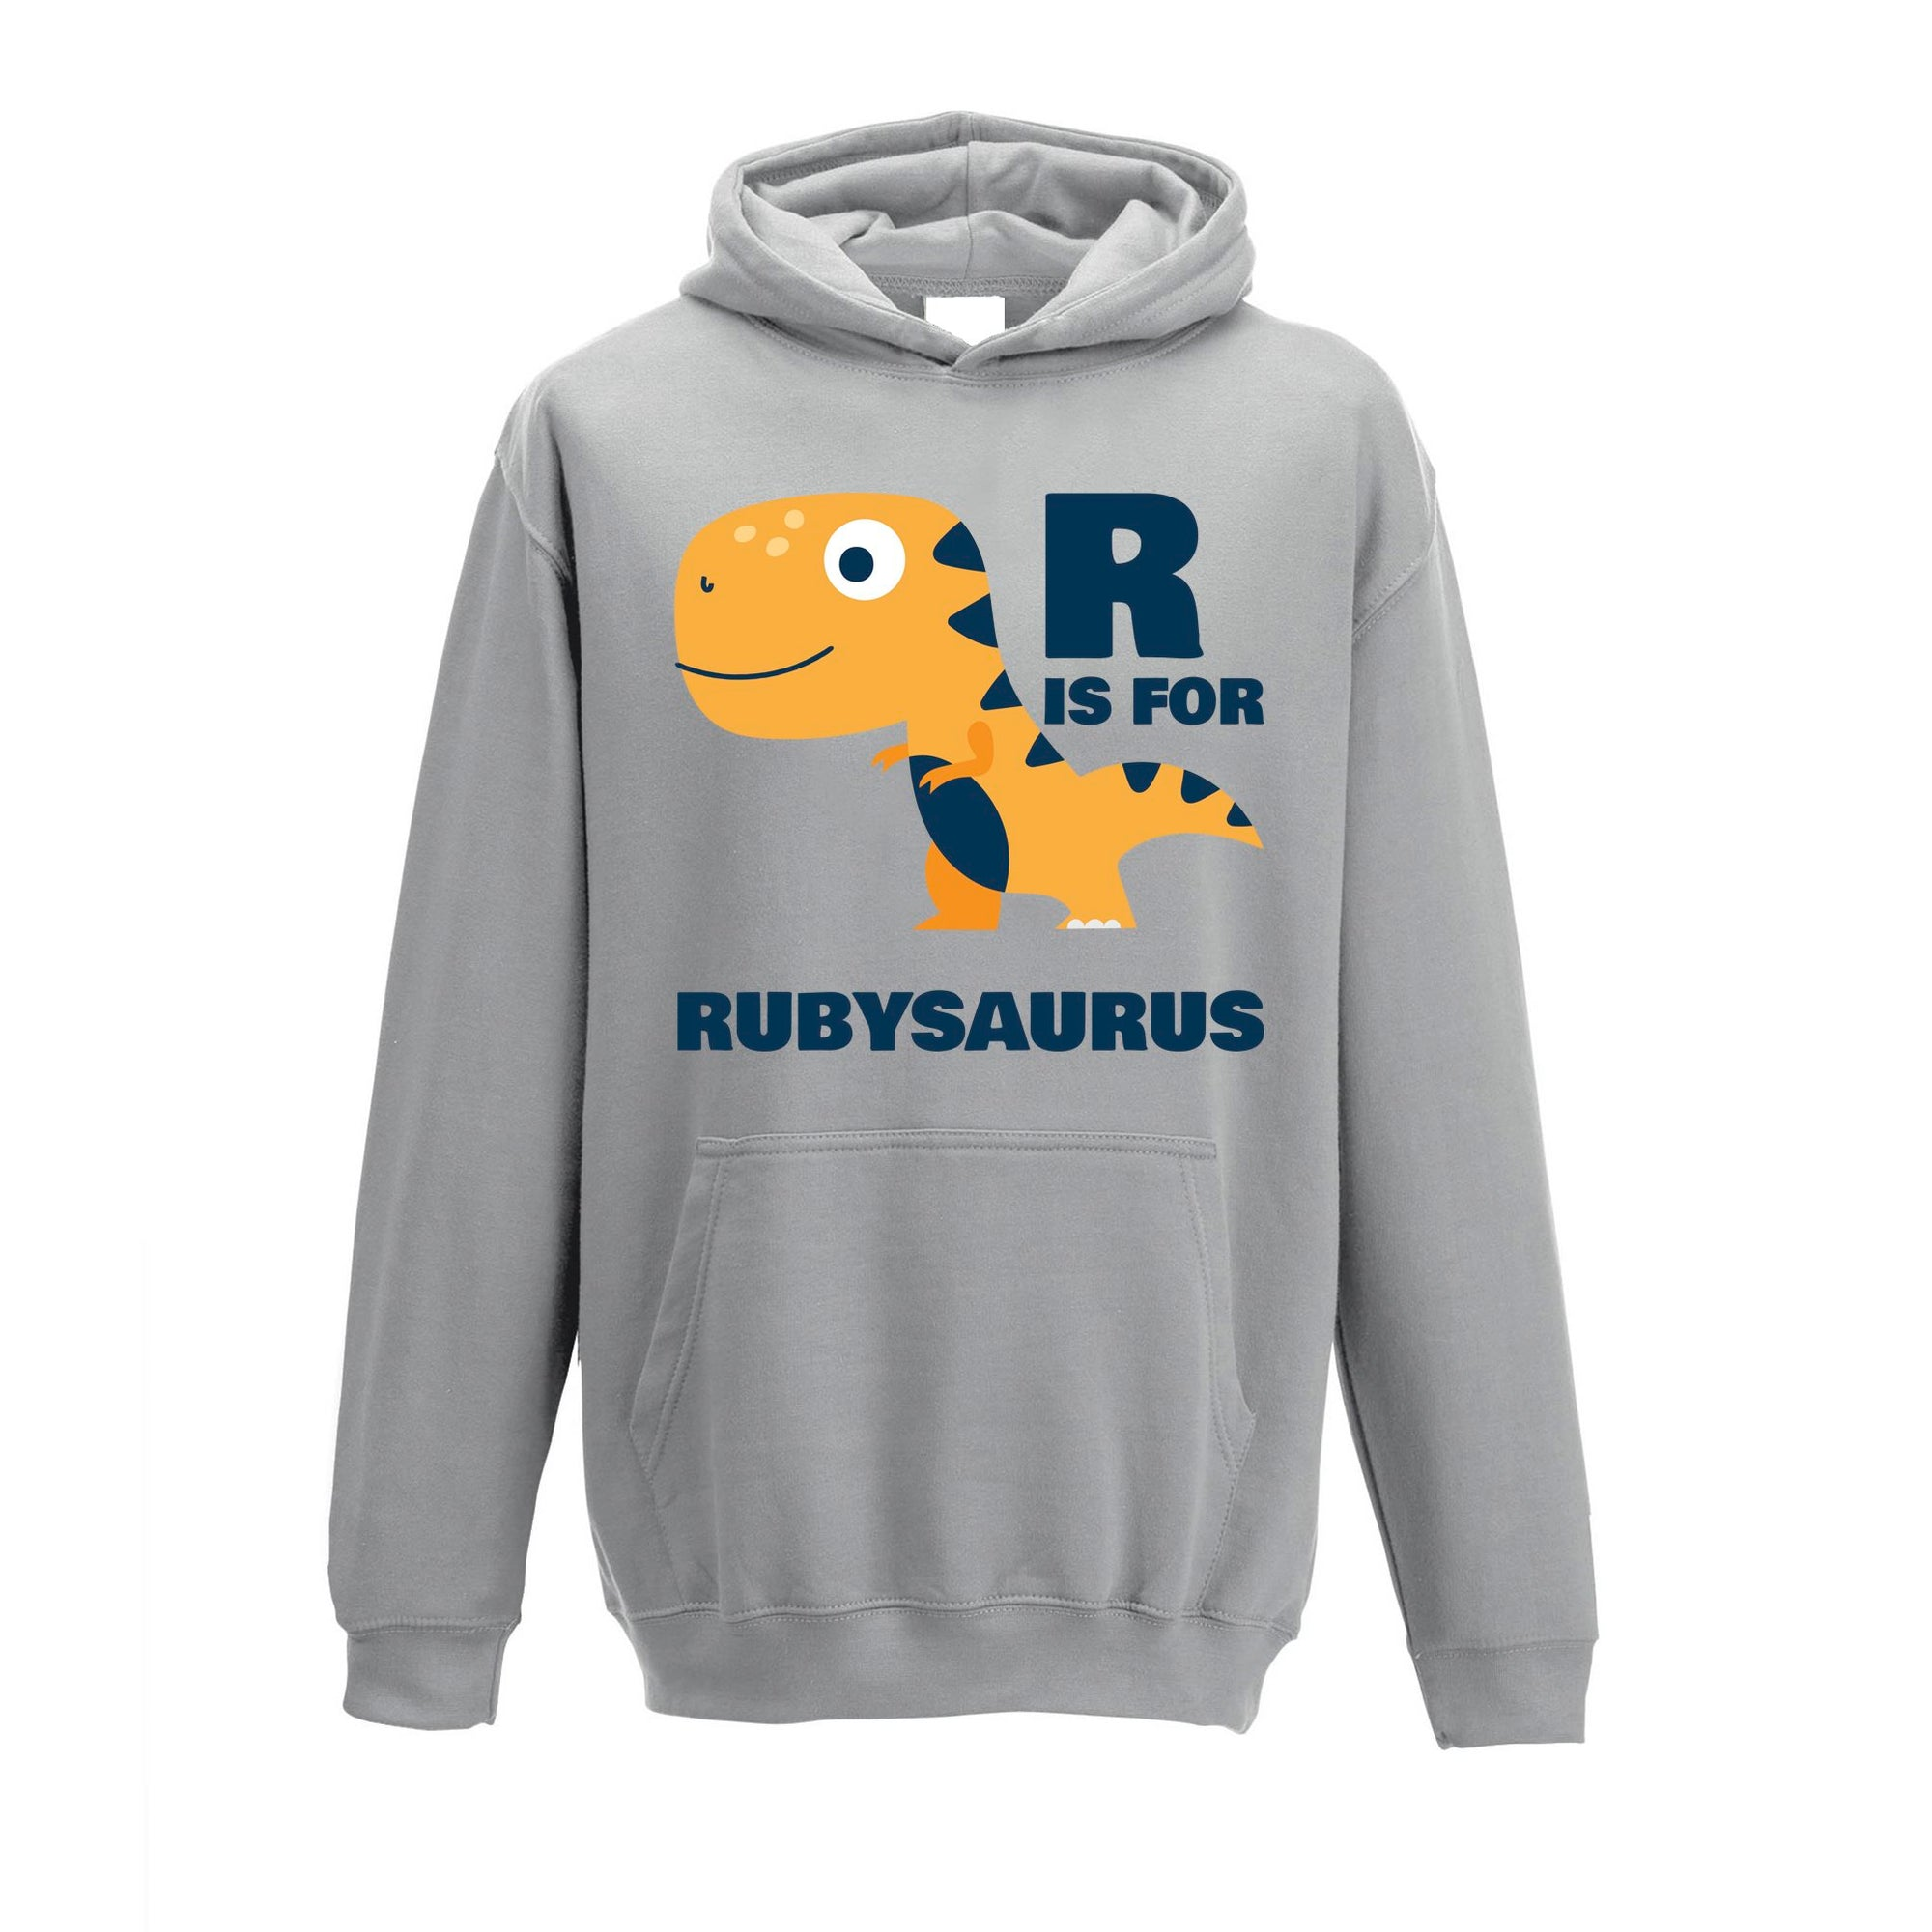 Dinosaur Kids Hoodie Ruby Saurus Birth Name Childs